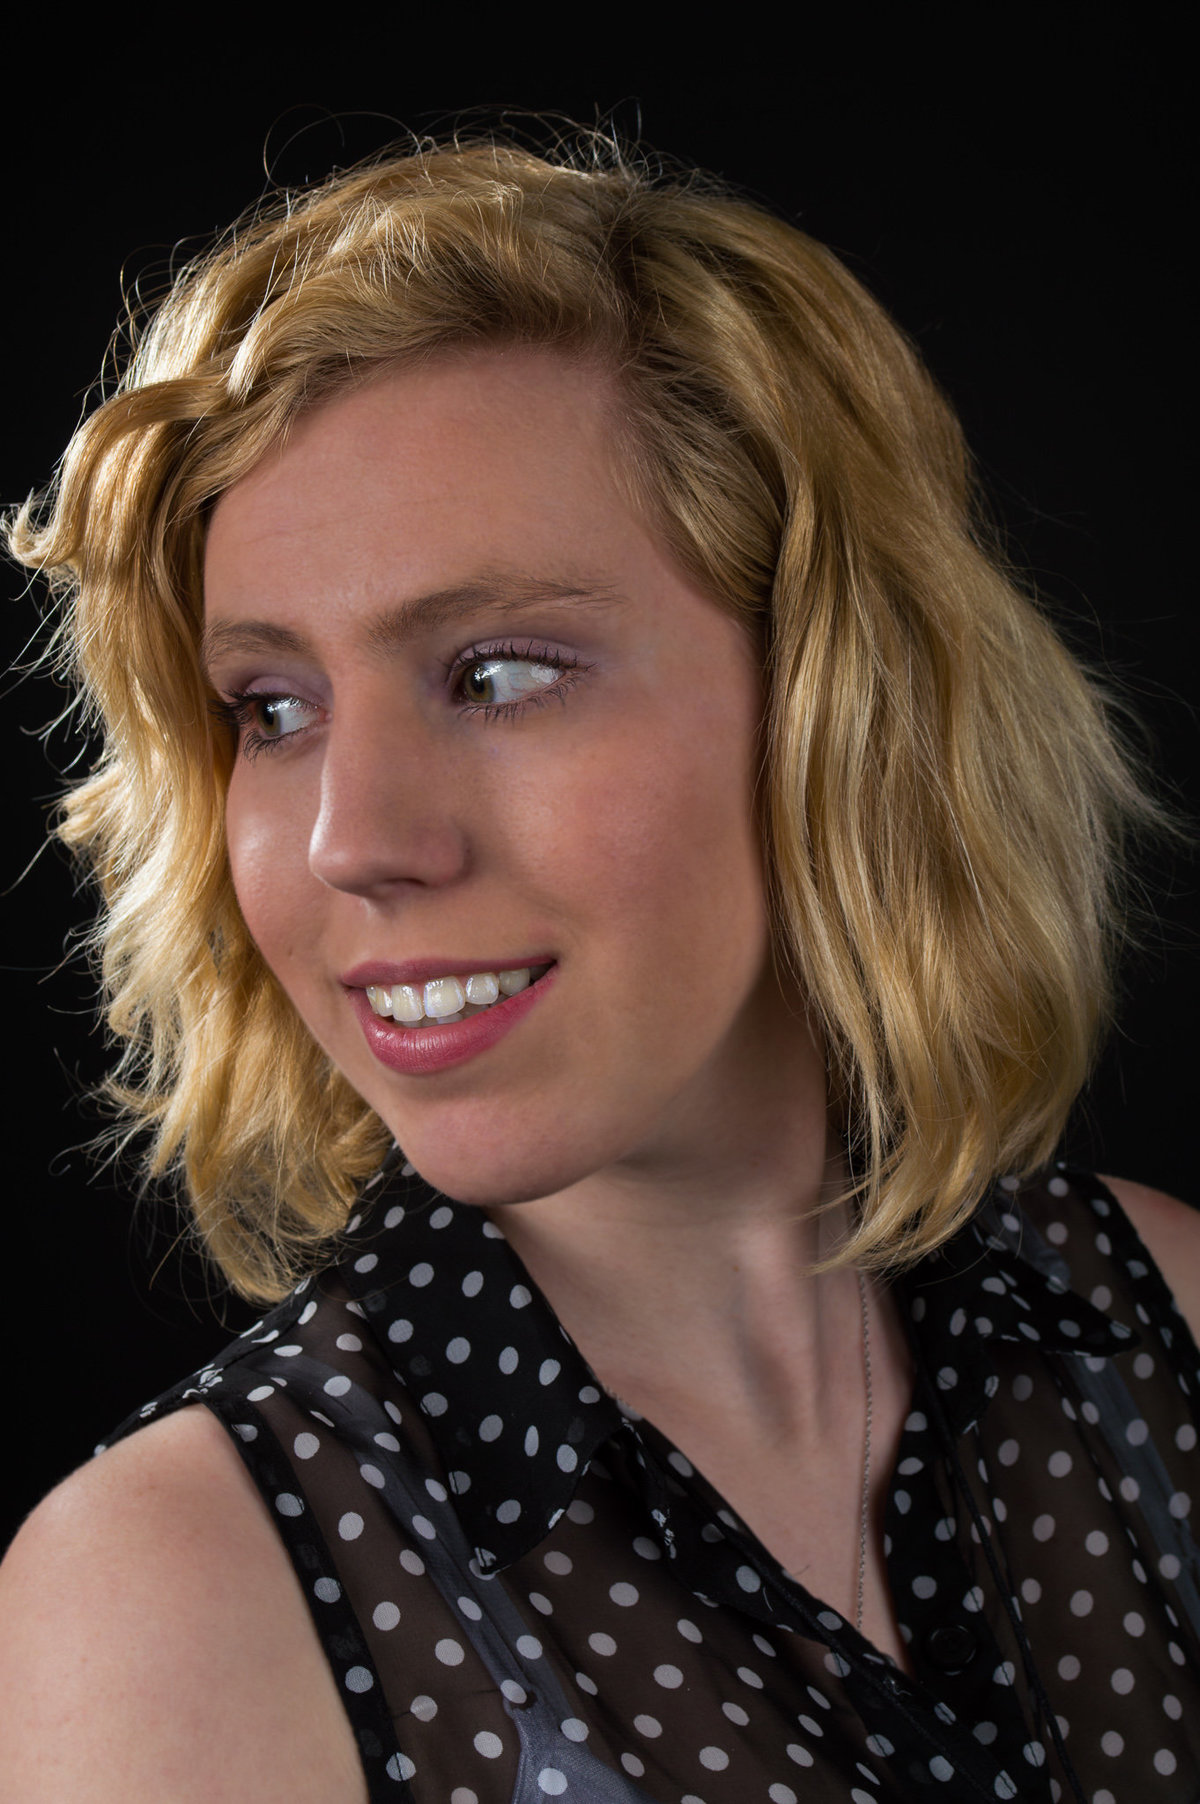 Portfolio headshot of a young adult with a black background